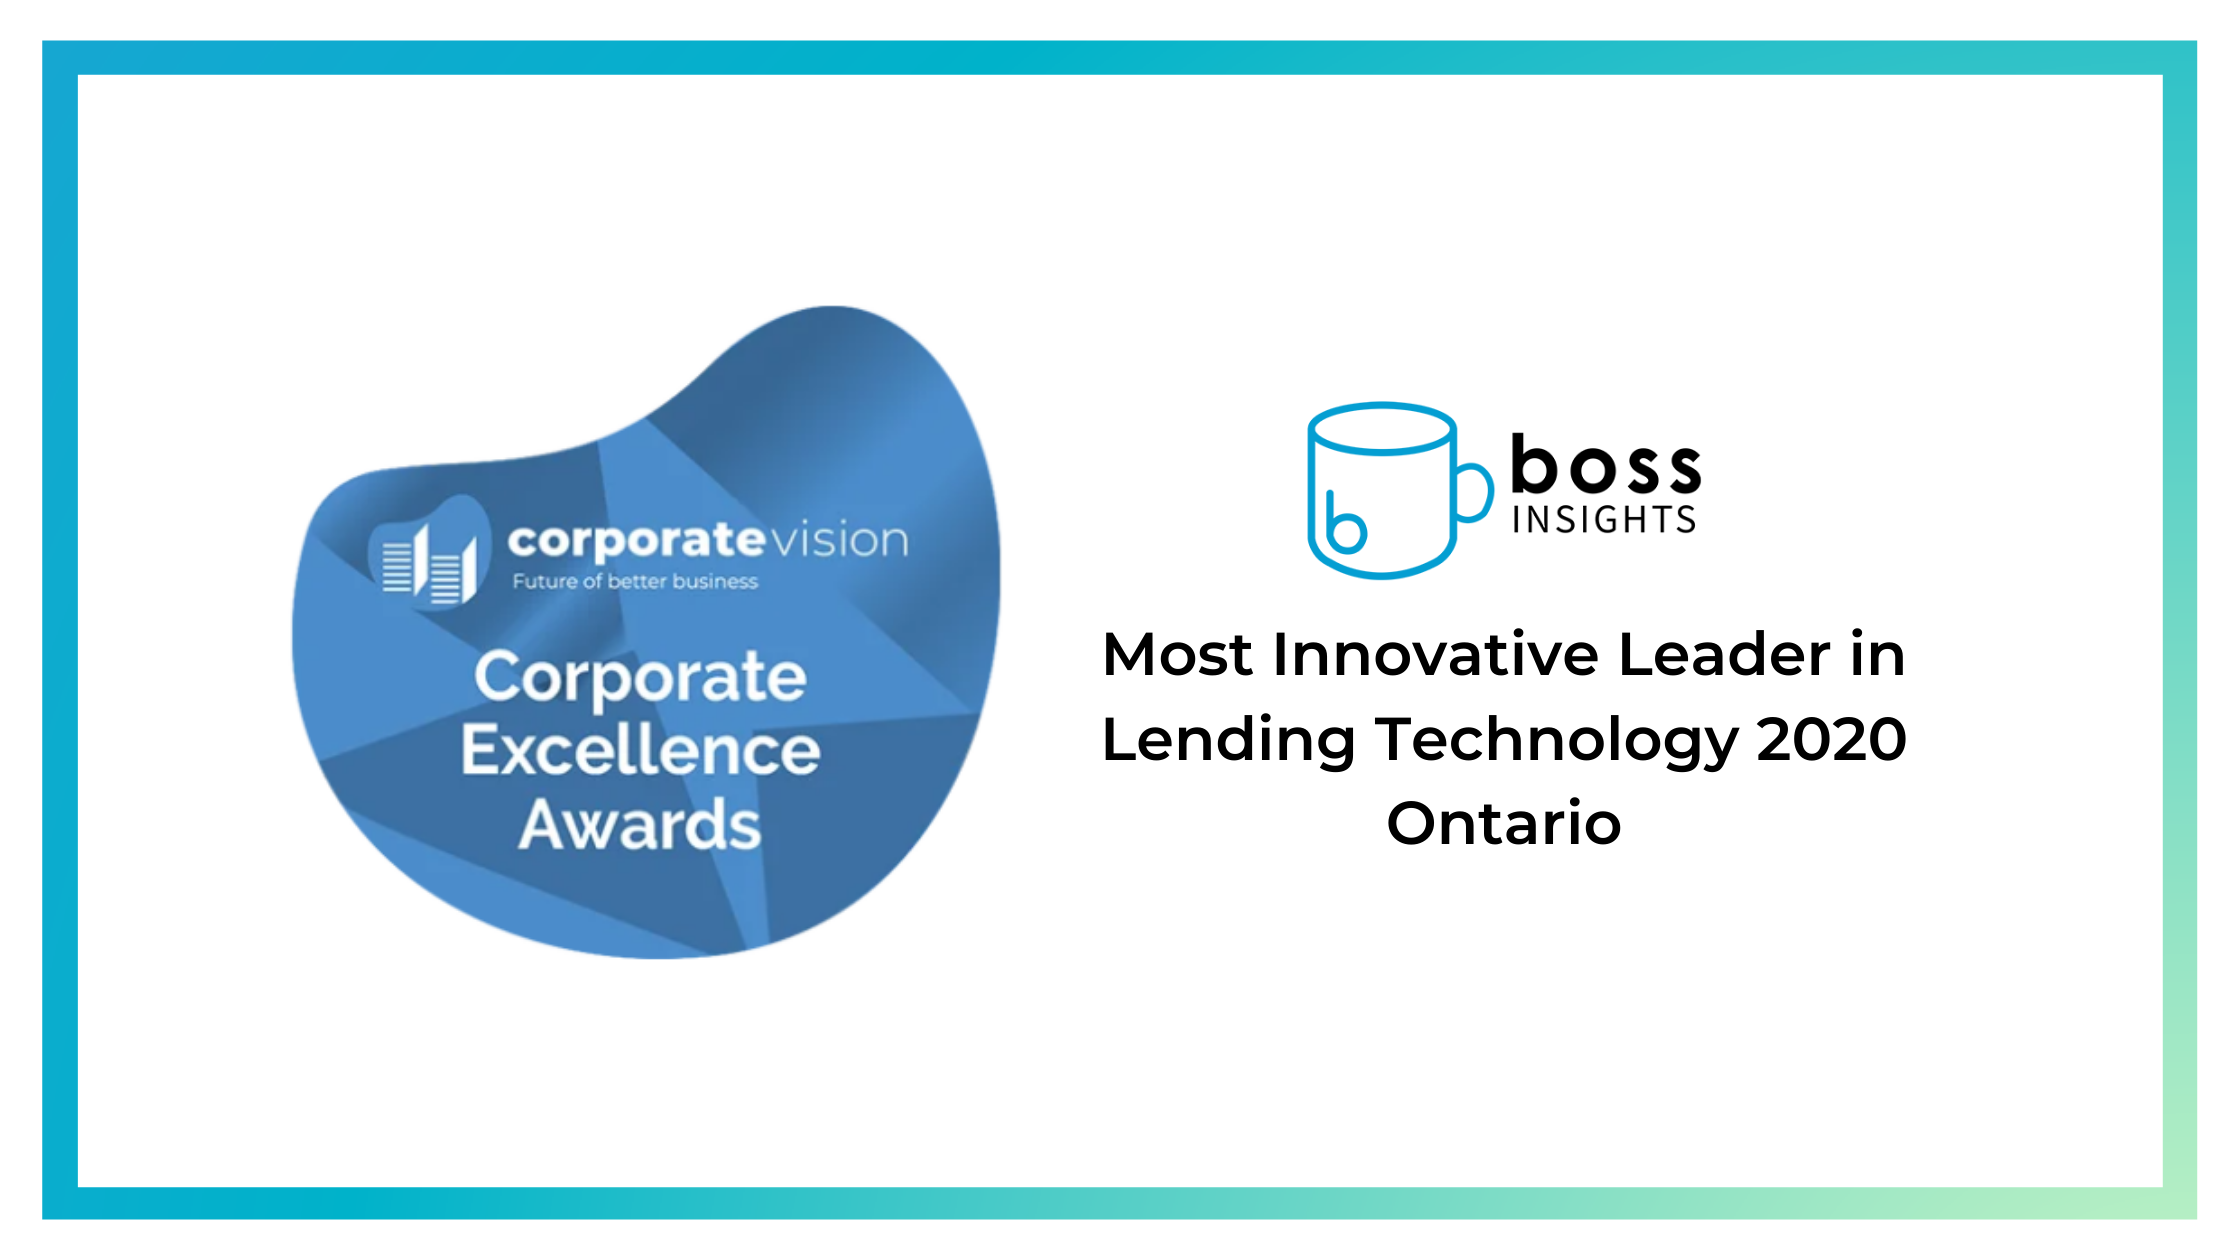 Boss Insights Wins Most Innovative Leader in Lending Tech Award